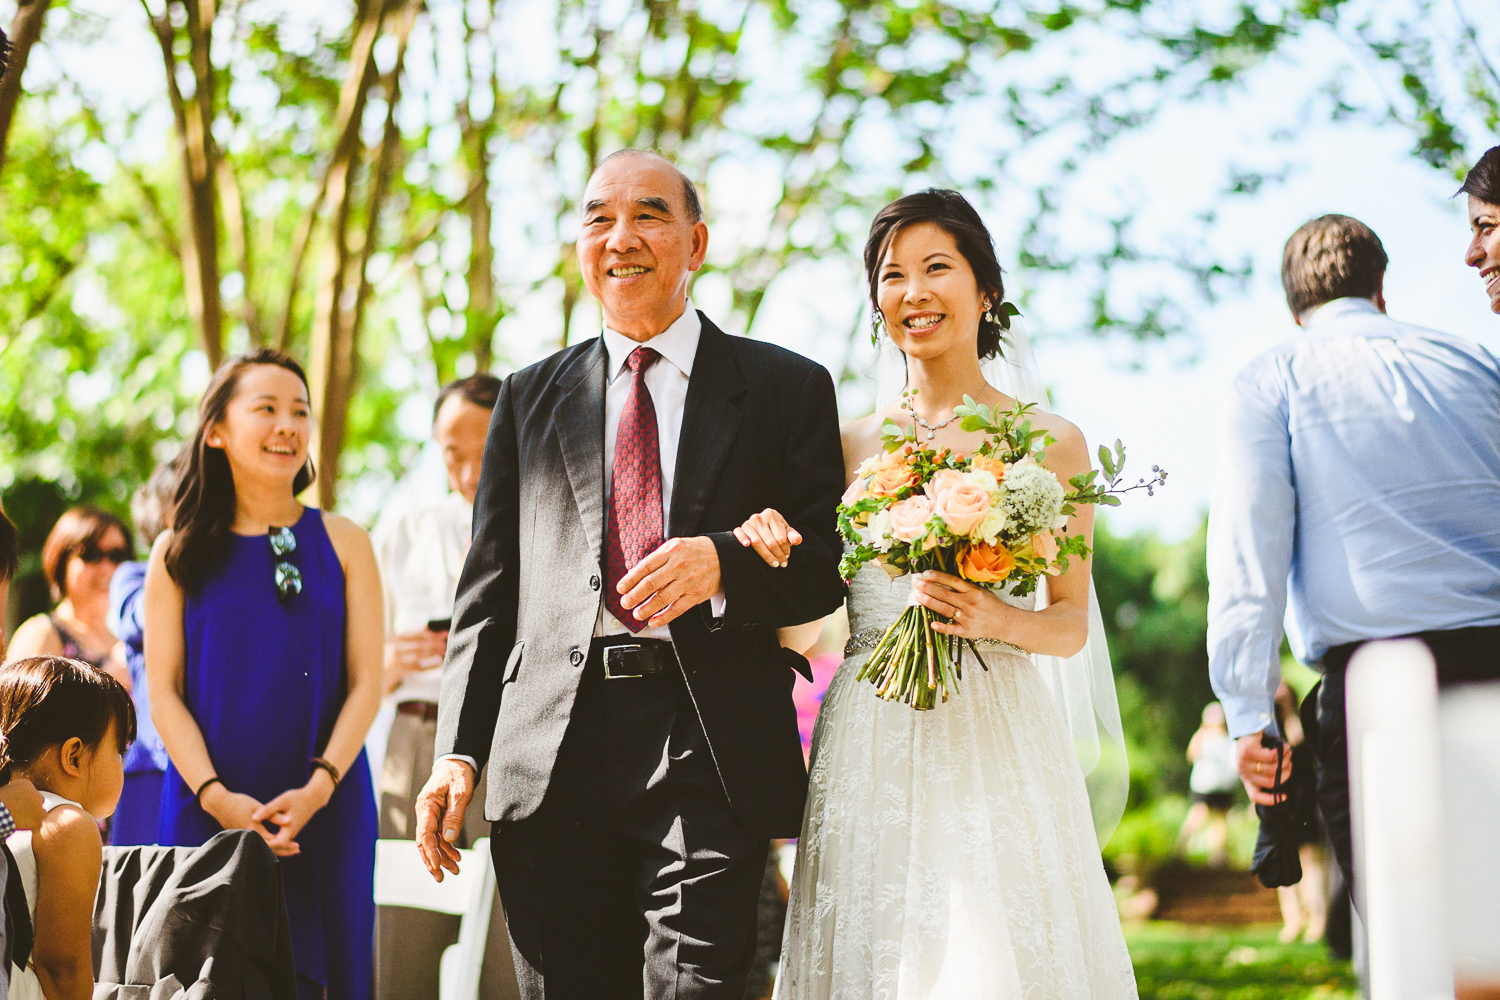 026 - bride walking down the aisle with her father smiling washington dc wedding photographer.jpg